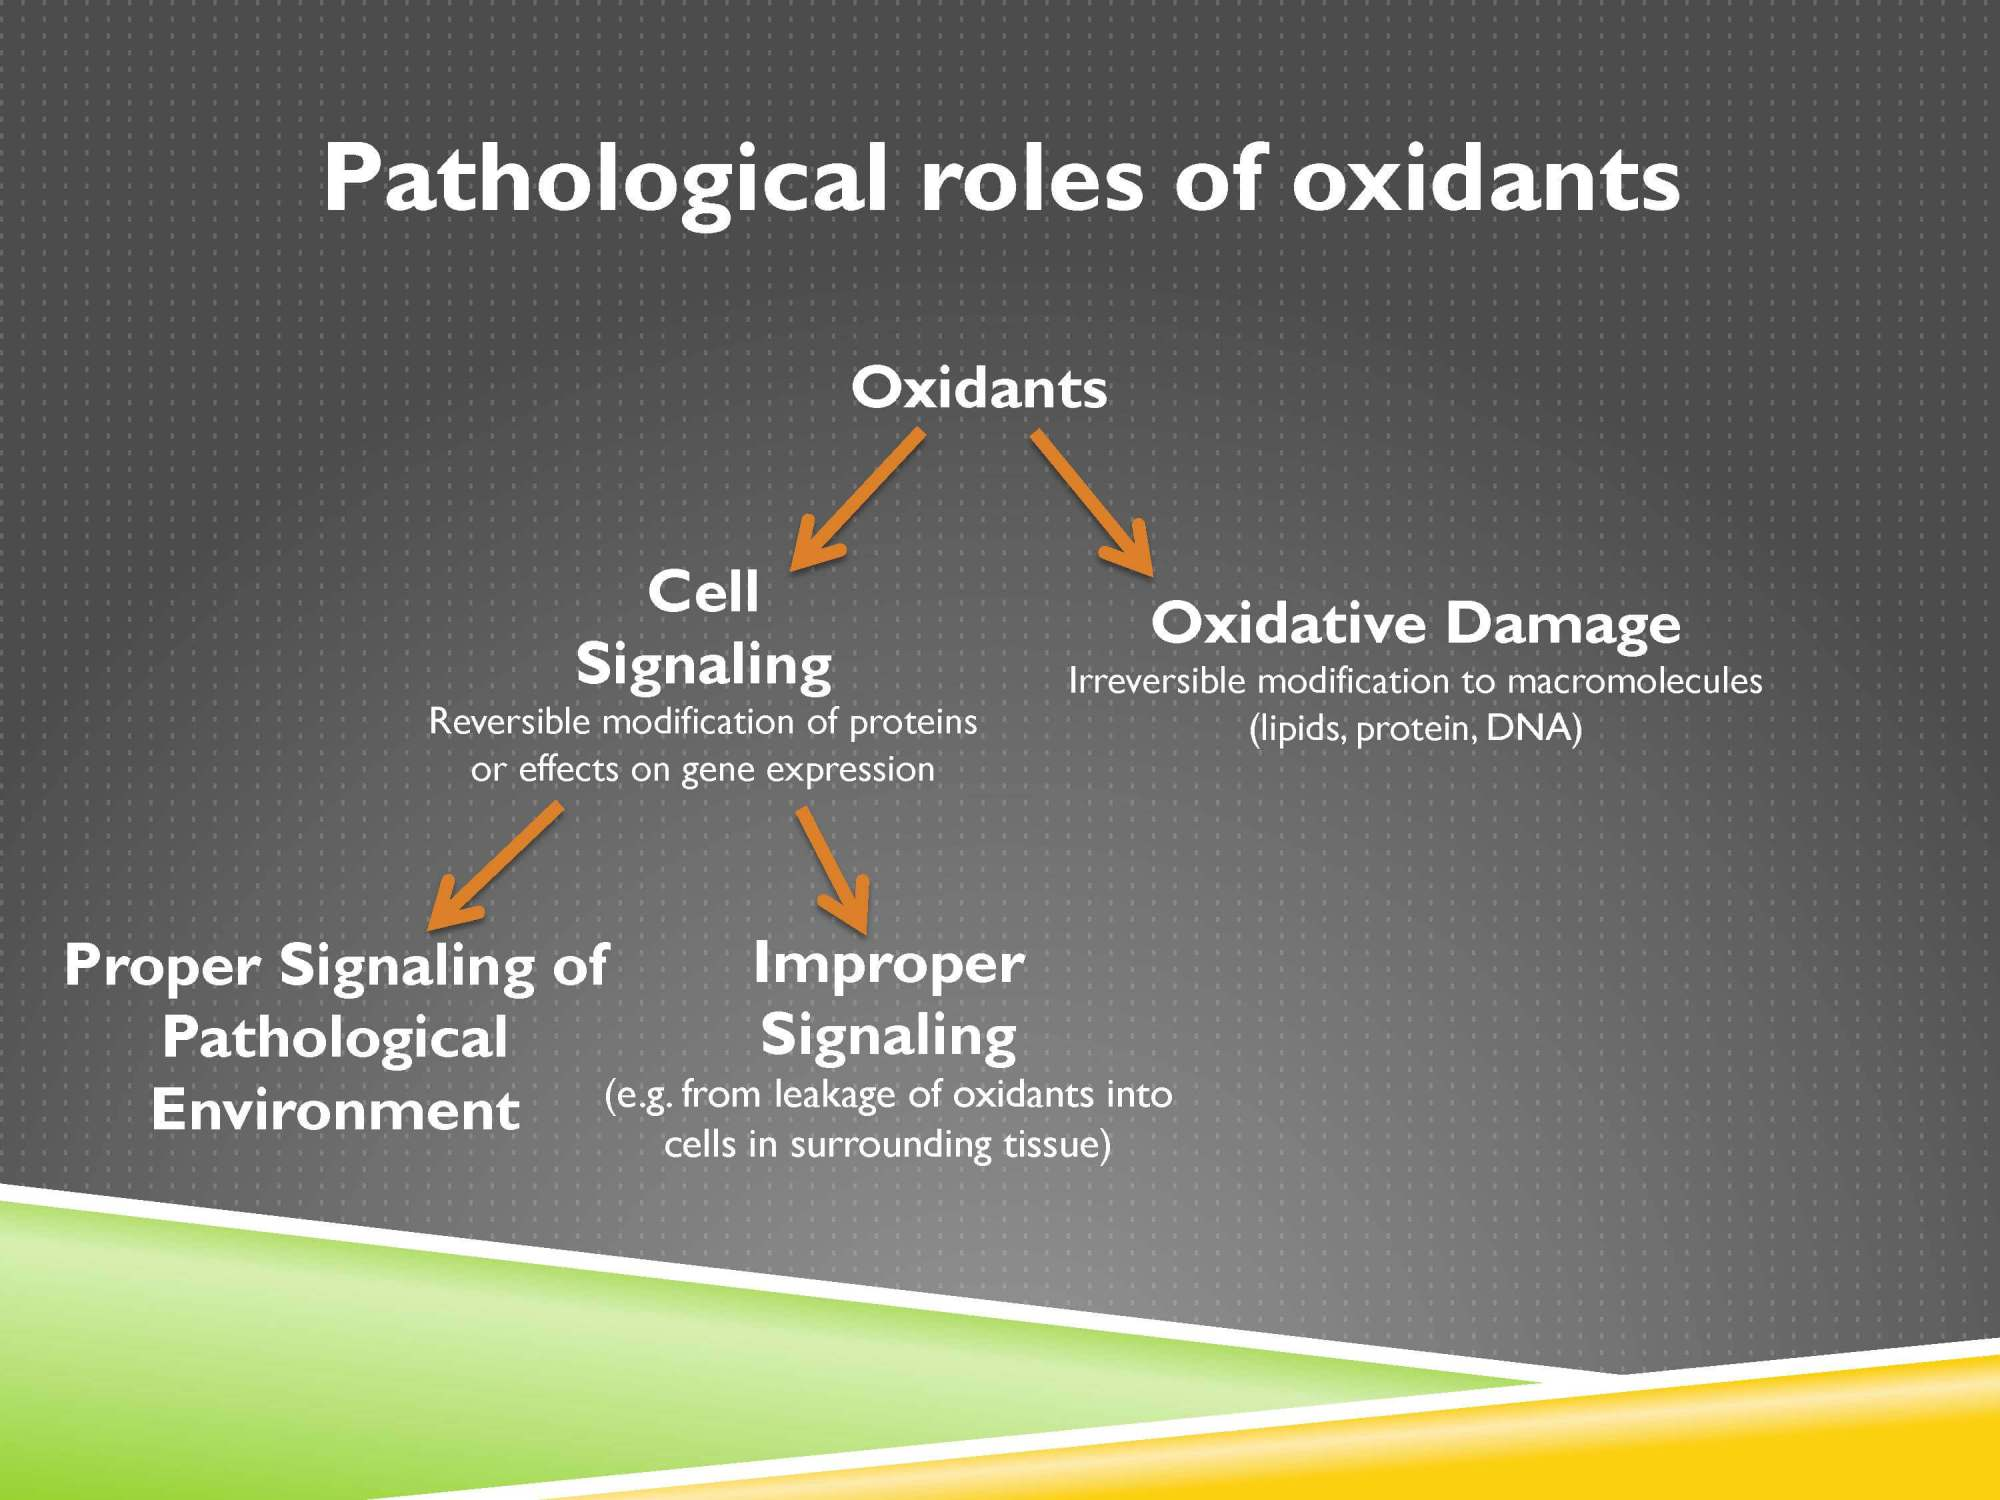 hight resolution of we have oxidative damage or cell signaling oxidative damage is the irreversible modification to macromolecules which are the large